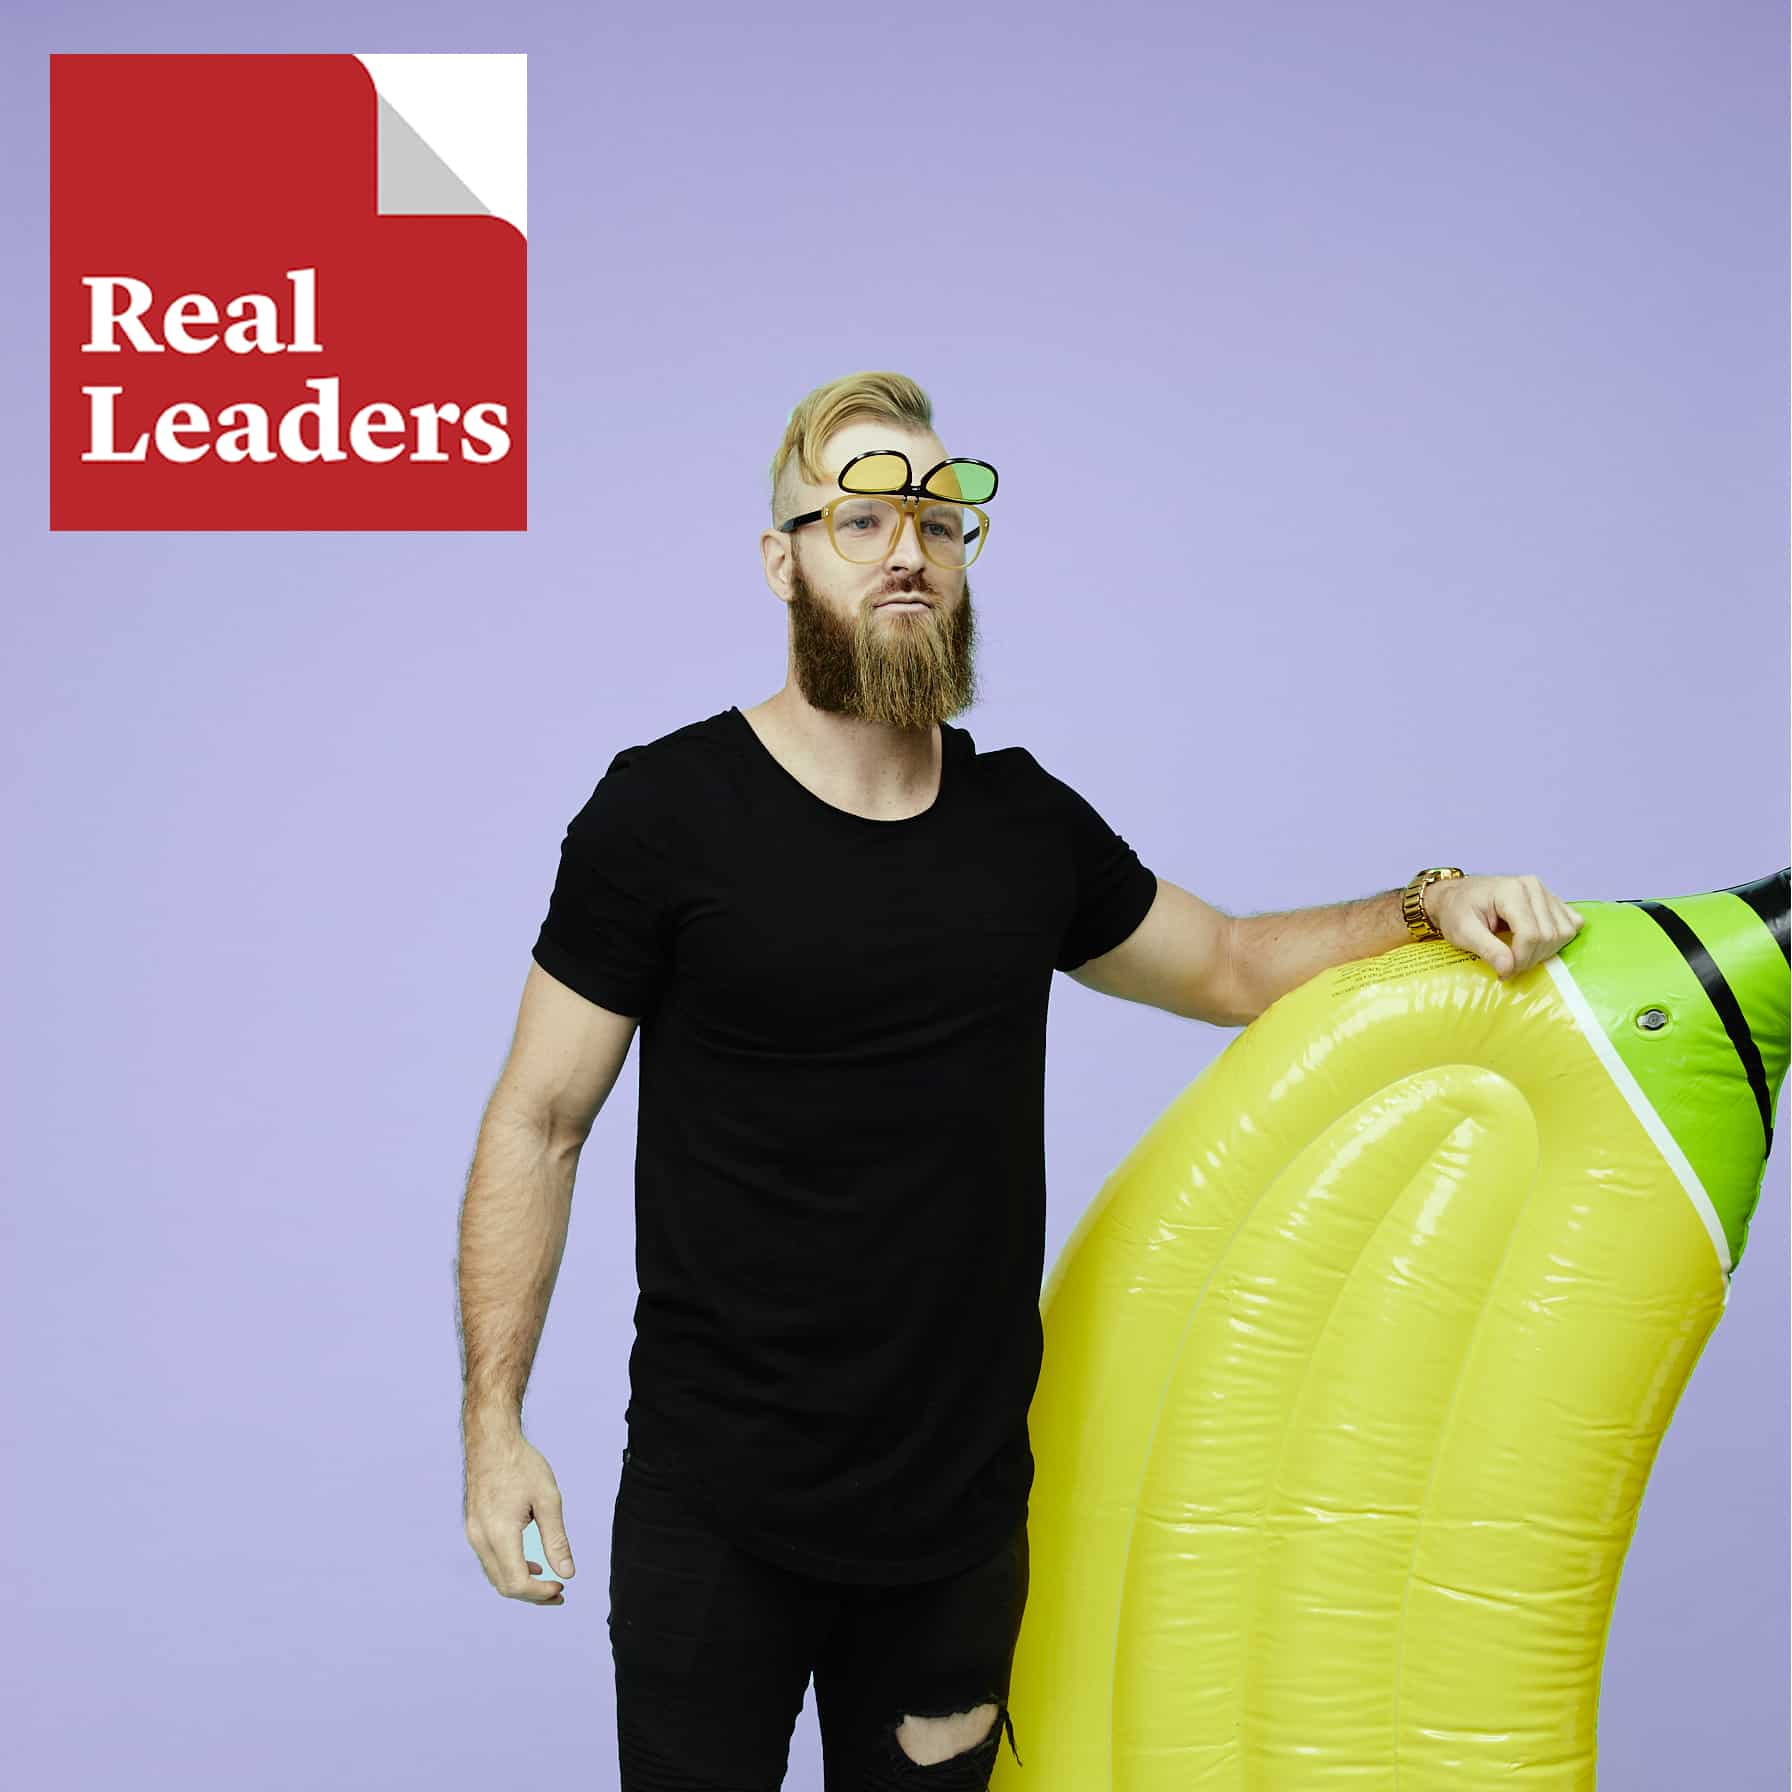 Podcast Conversation : Real Leaders Podcast On What It Takes